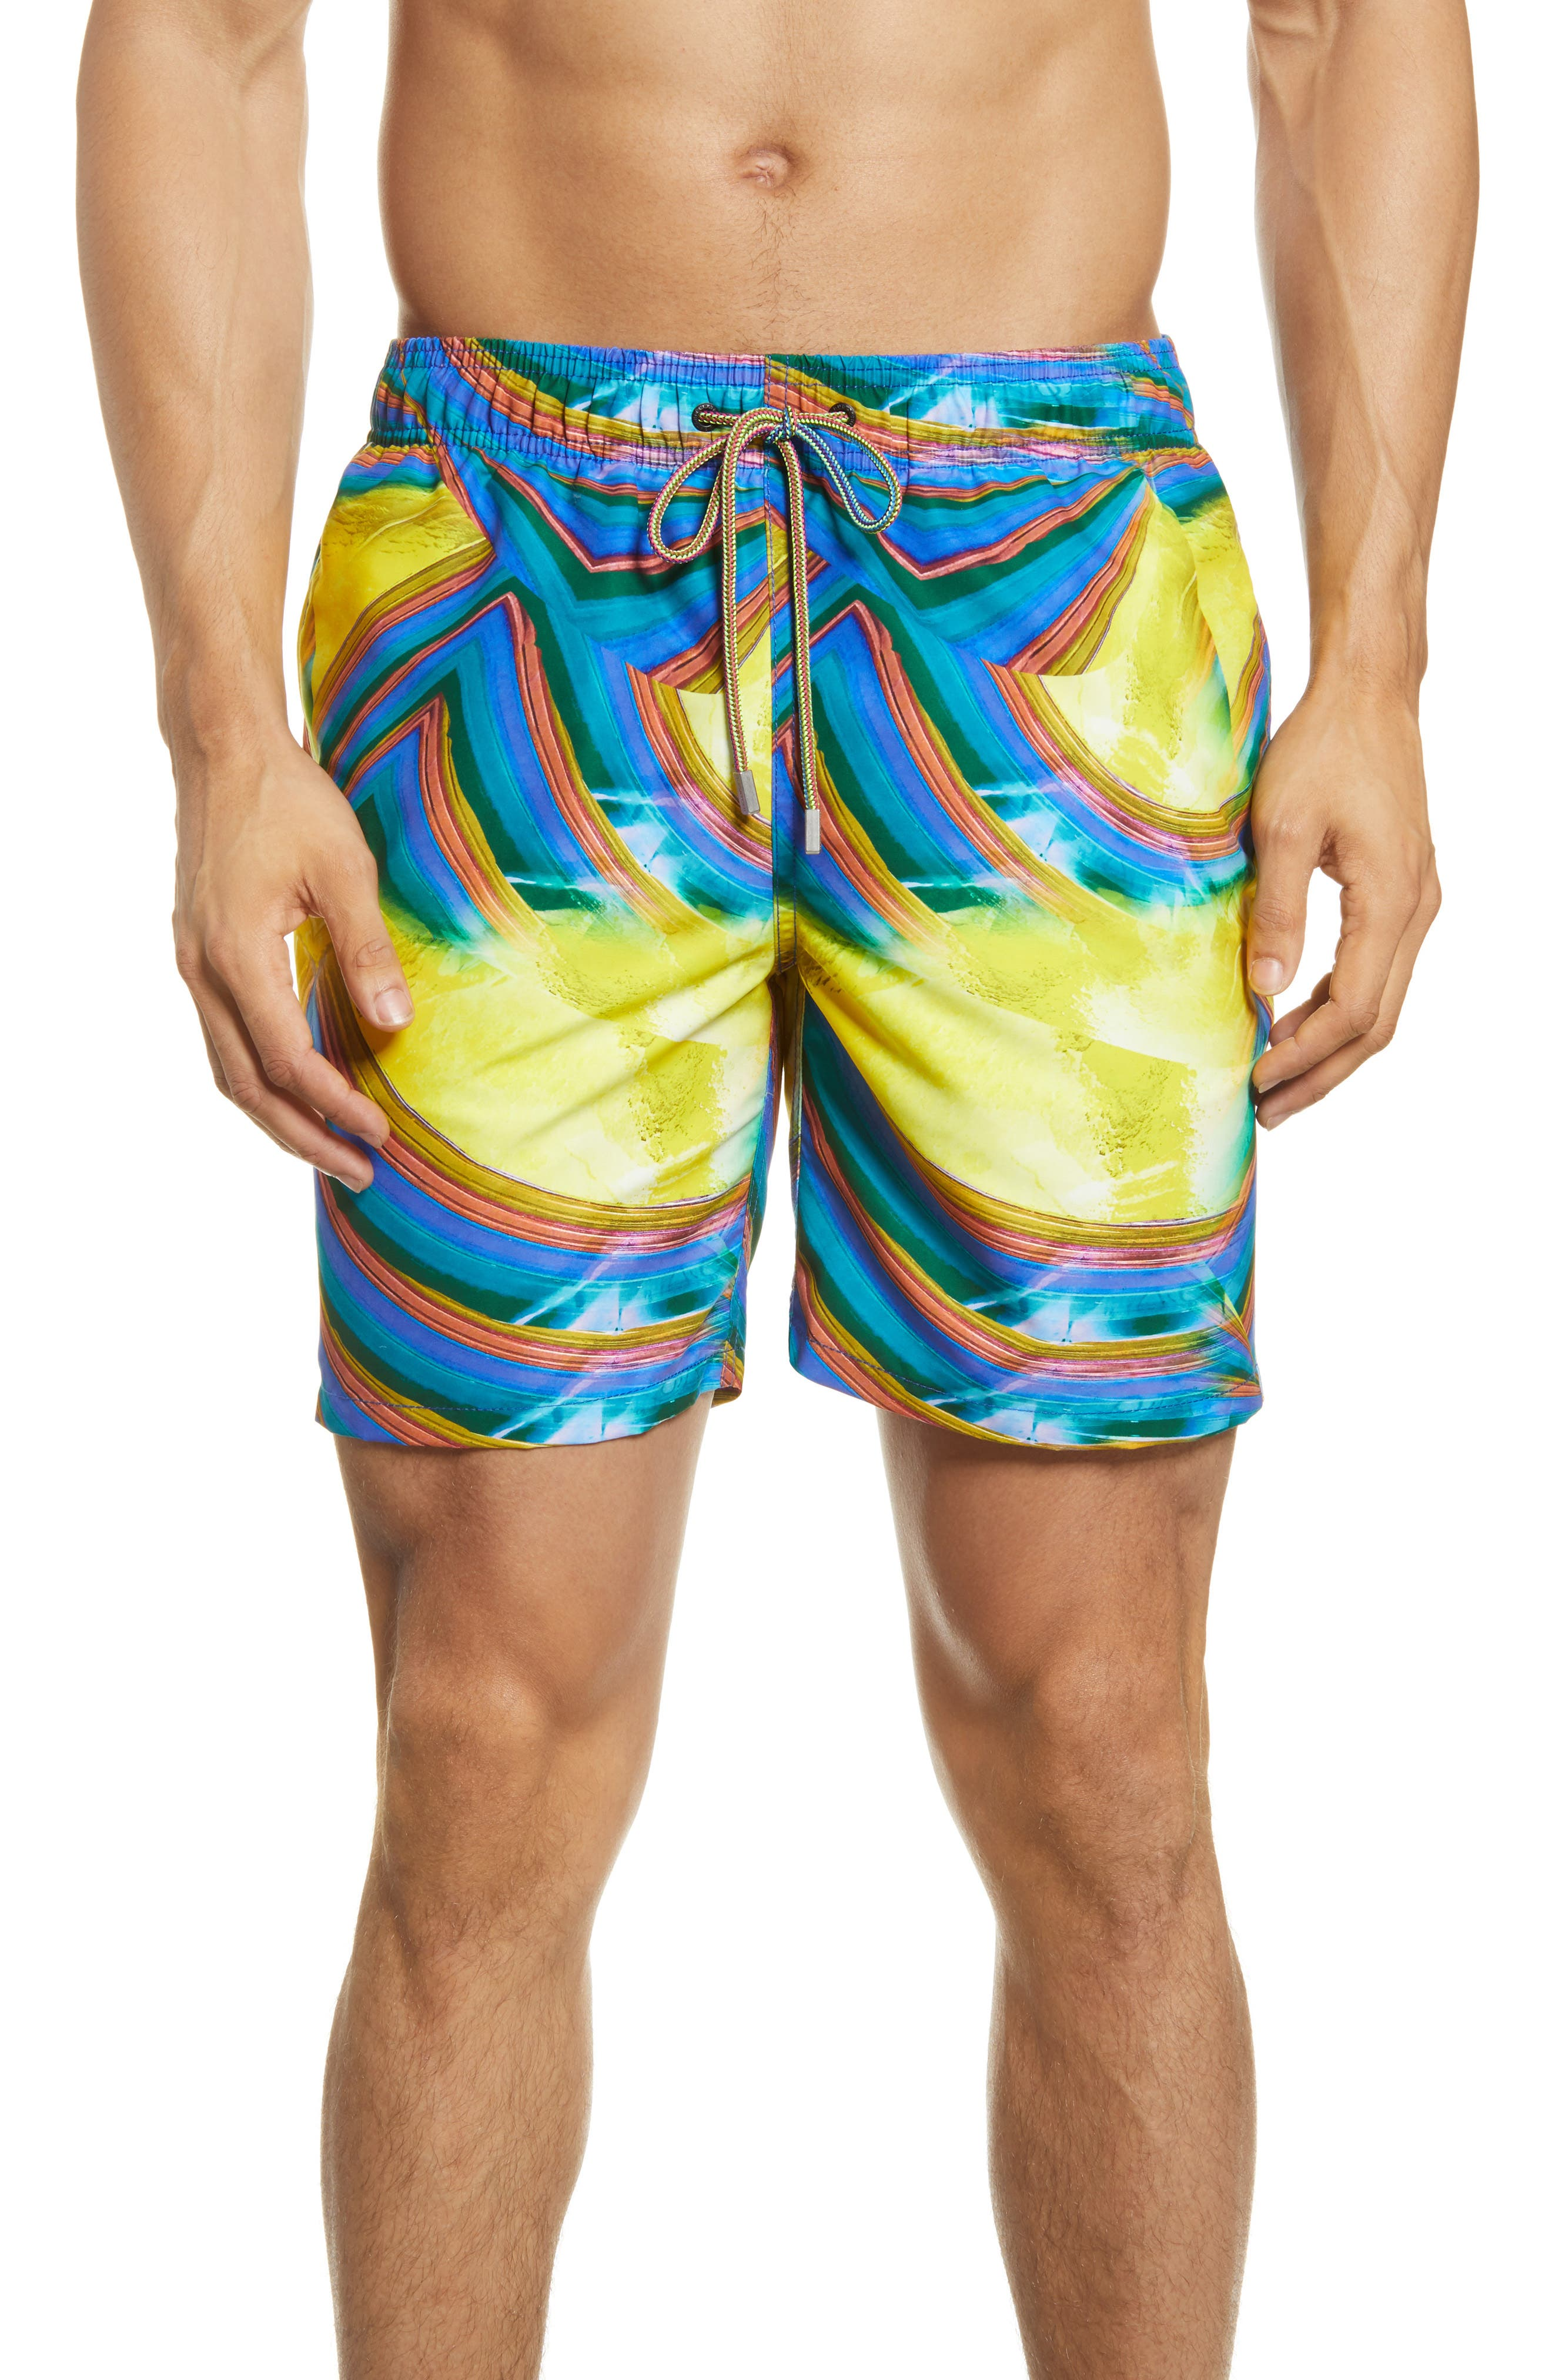 Abstract swirls splash in bright colors across swim trunks cut from lightweight, quick-drying nylon that offers comfort in and out of the water. Style Name: Bugatchi Nylon Swim Trunks. Style Number: 6039786. Available in stores.